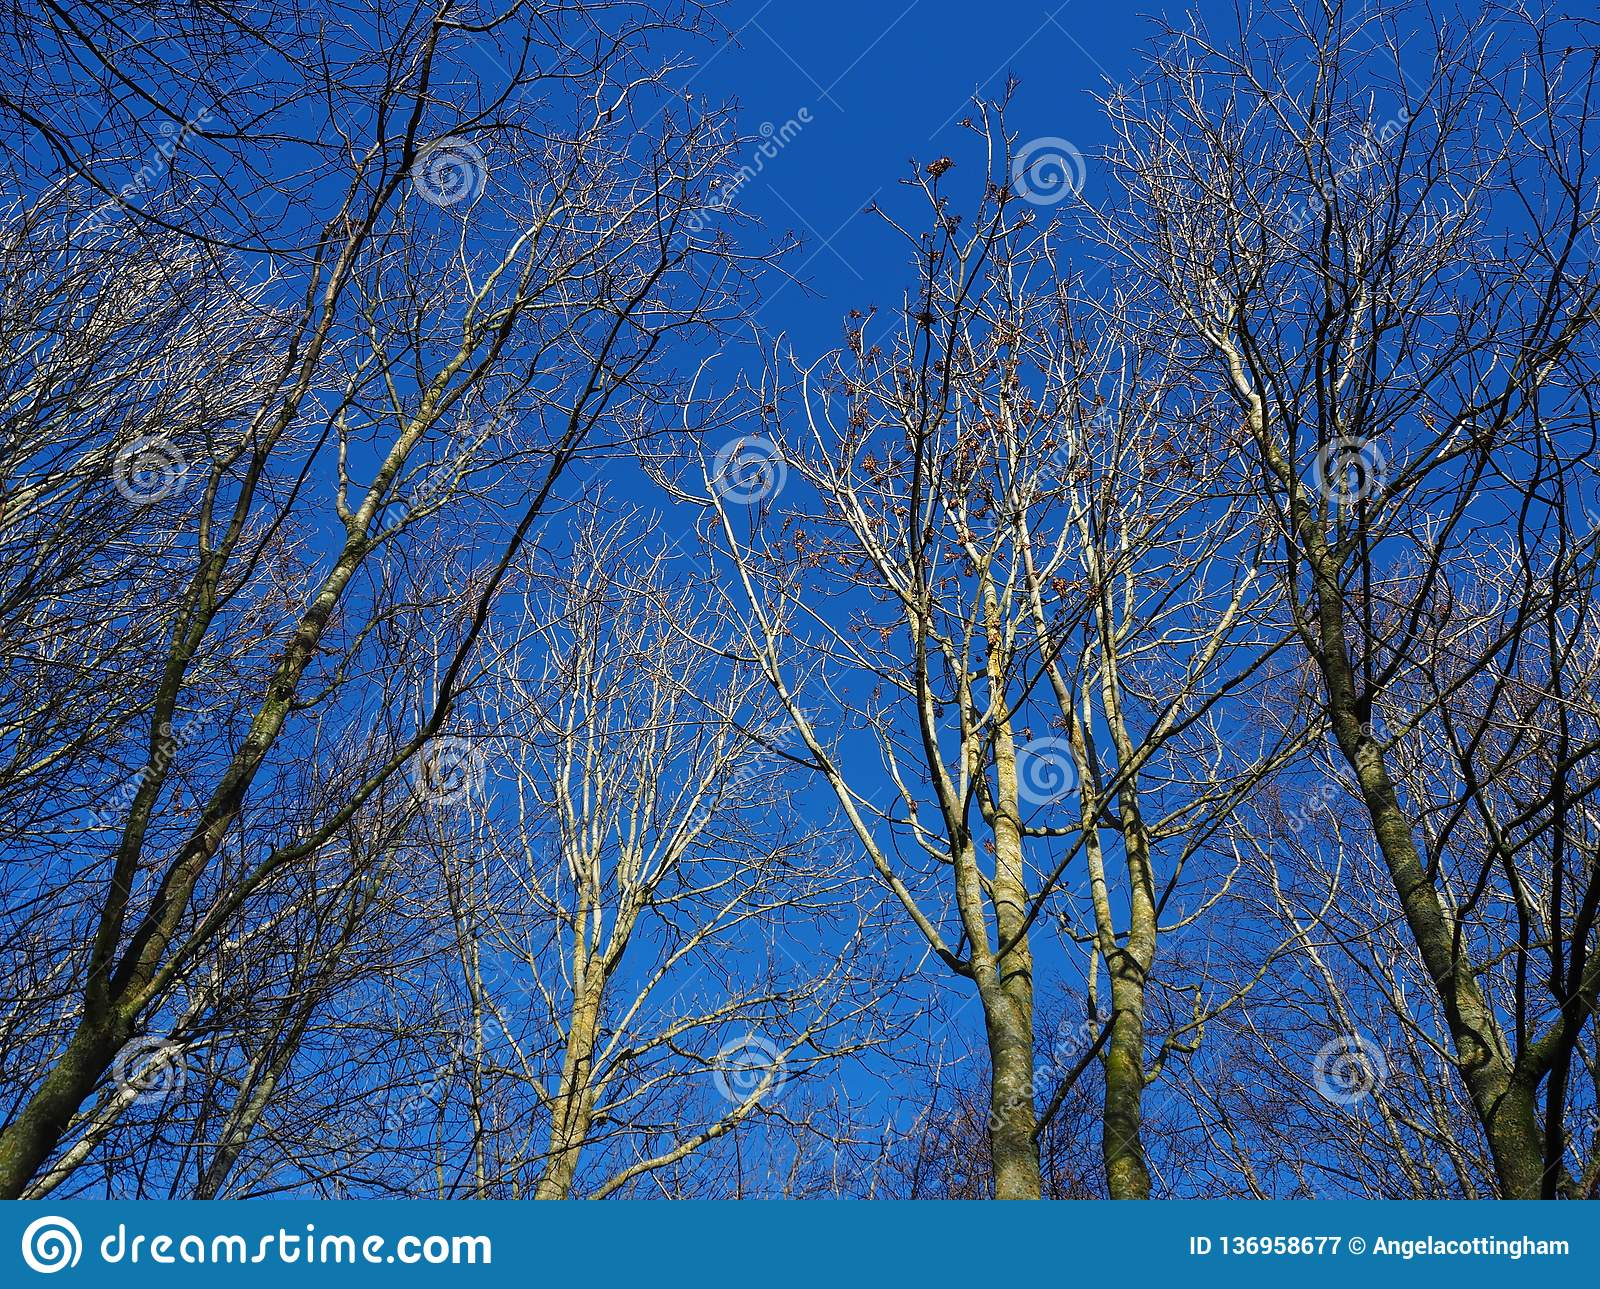 Looking up to grey sky stock image. Image of grey, dull